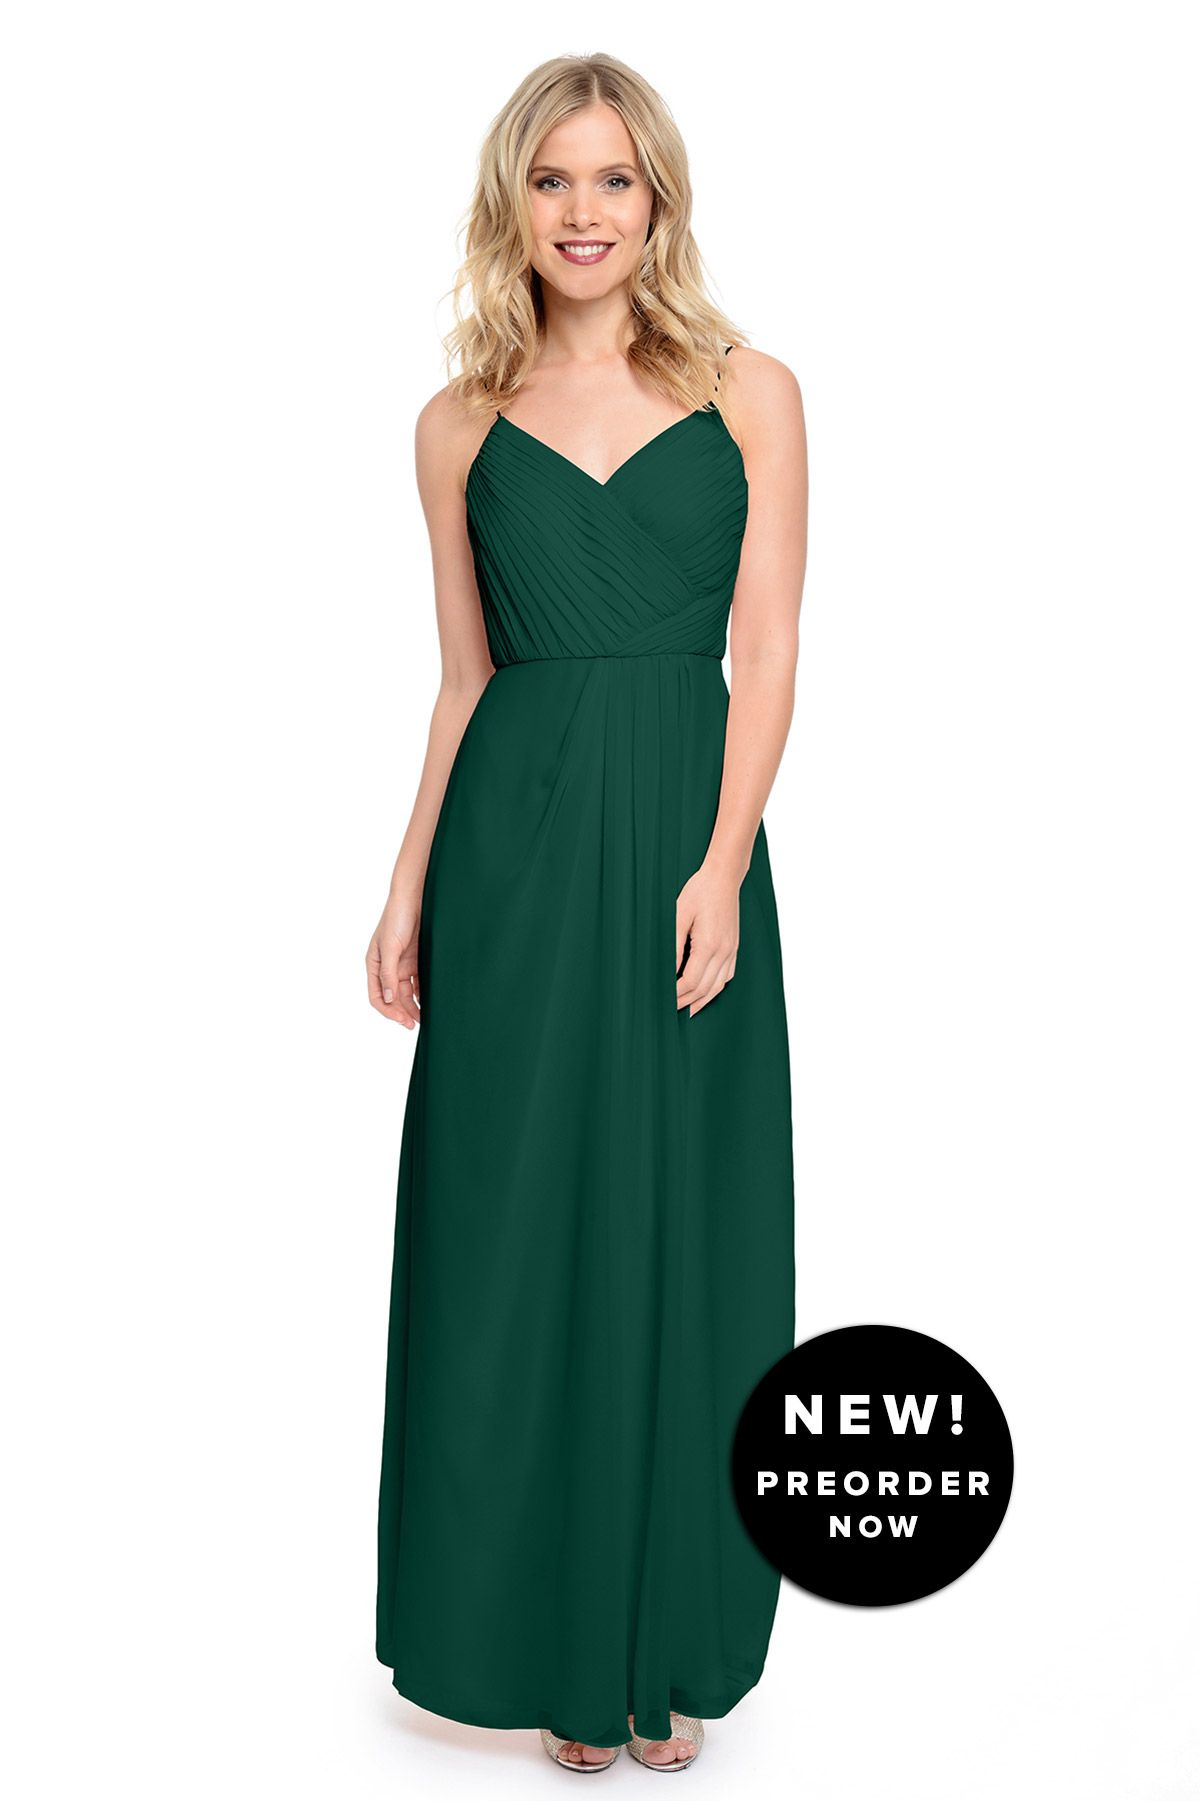 Camille dahlia party fashion and bridal accessories shop dove dahlia bridesmaid dress camille in poly chiffon at weddington way find ombrellifo Images